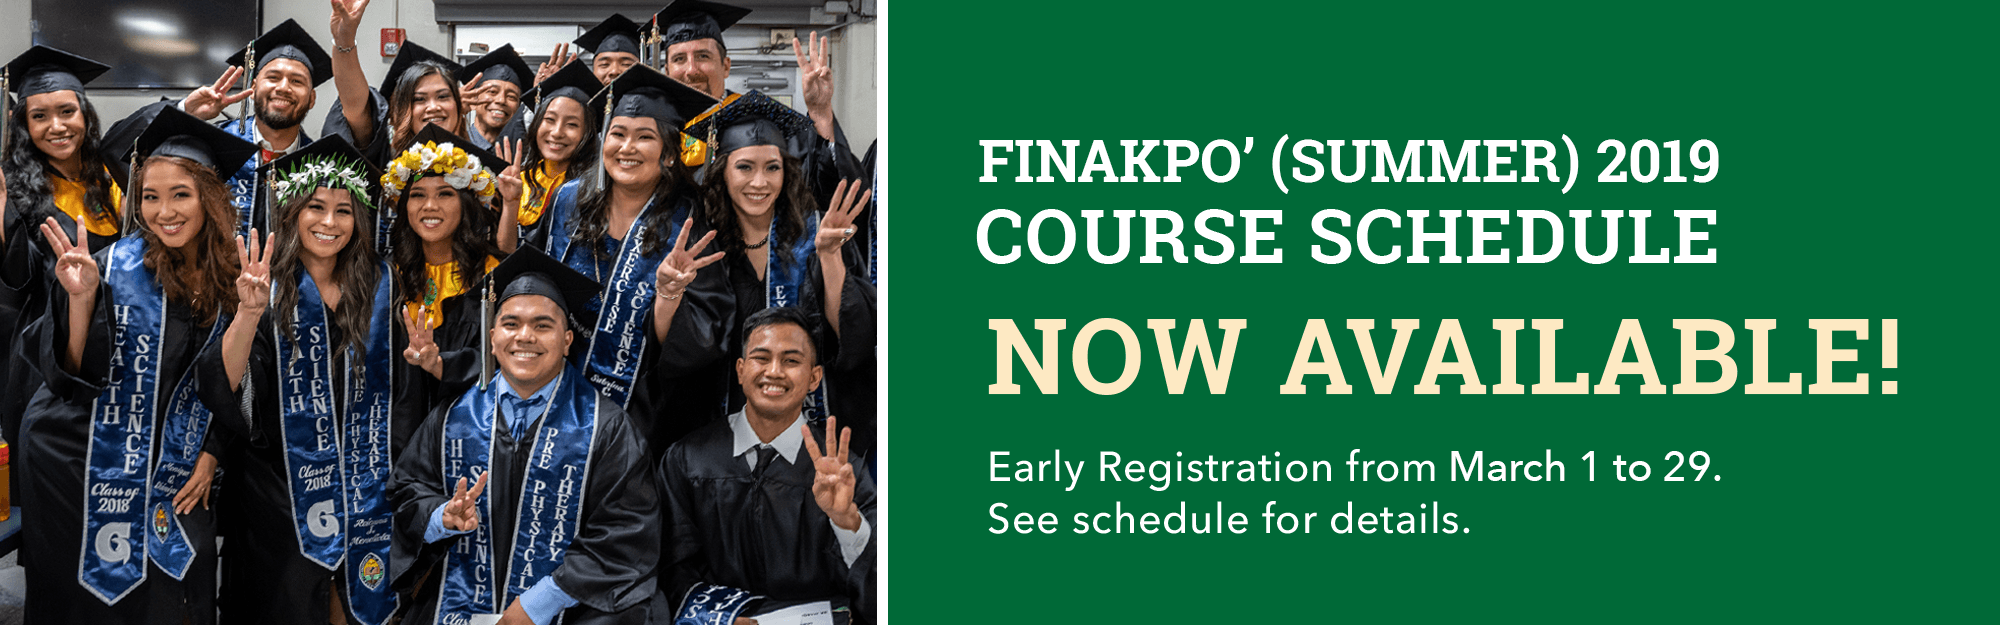 Finakpo' 2019 Course Schedule